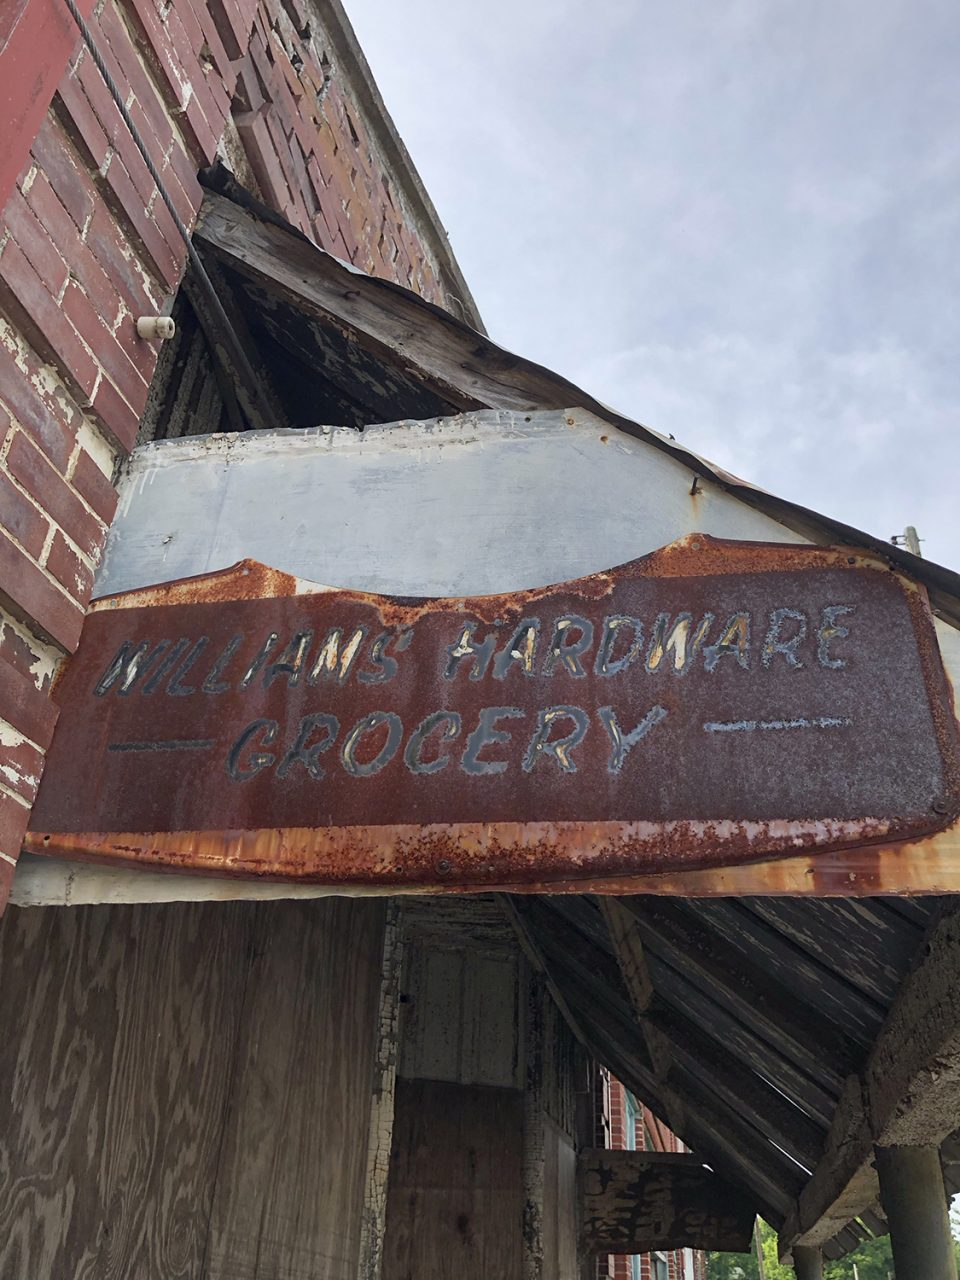 A closer look at the rusty Williams Hardware and Grocery sign. These are the only remaining signage on any of Pamplin's Main Street storefronts.